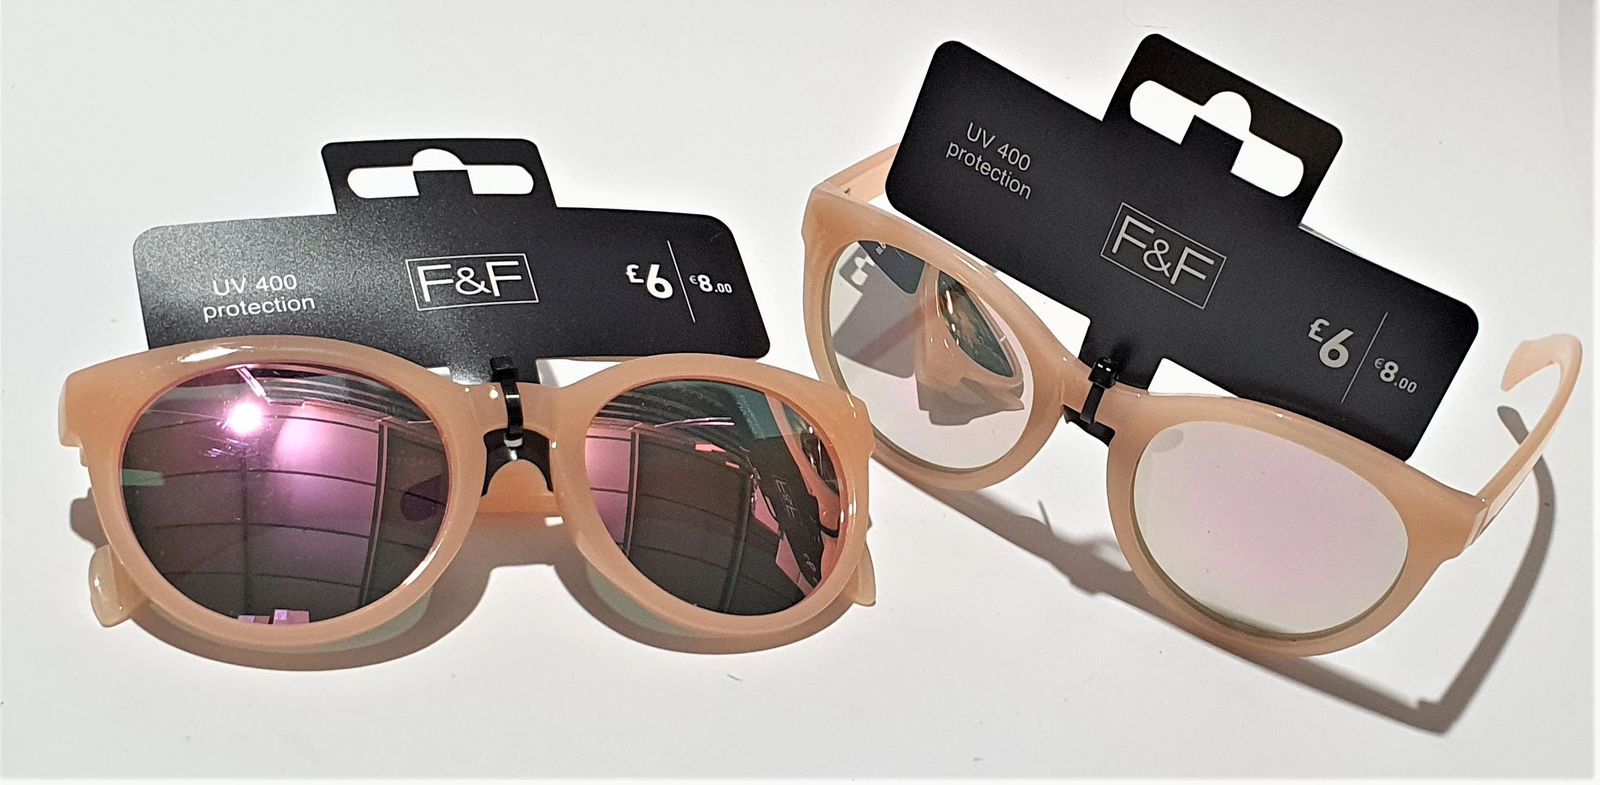 F&F Women's RETRO PINK - With Pink Mirror UV400 Protection Lenses TWIN PACK